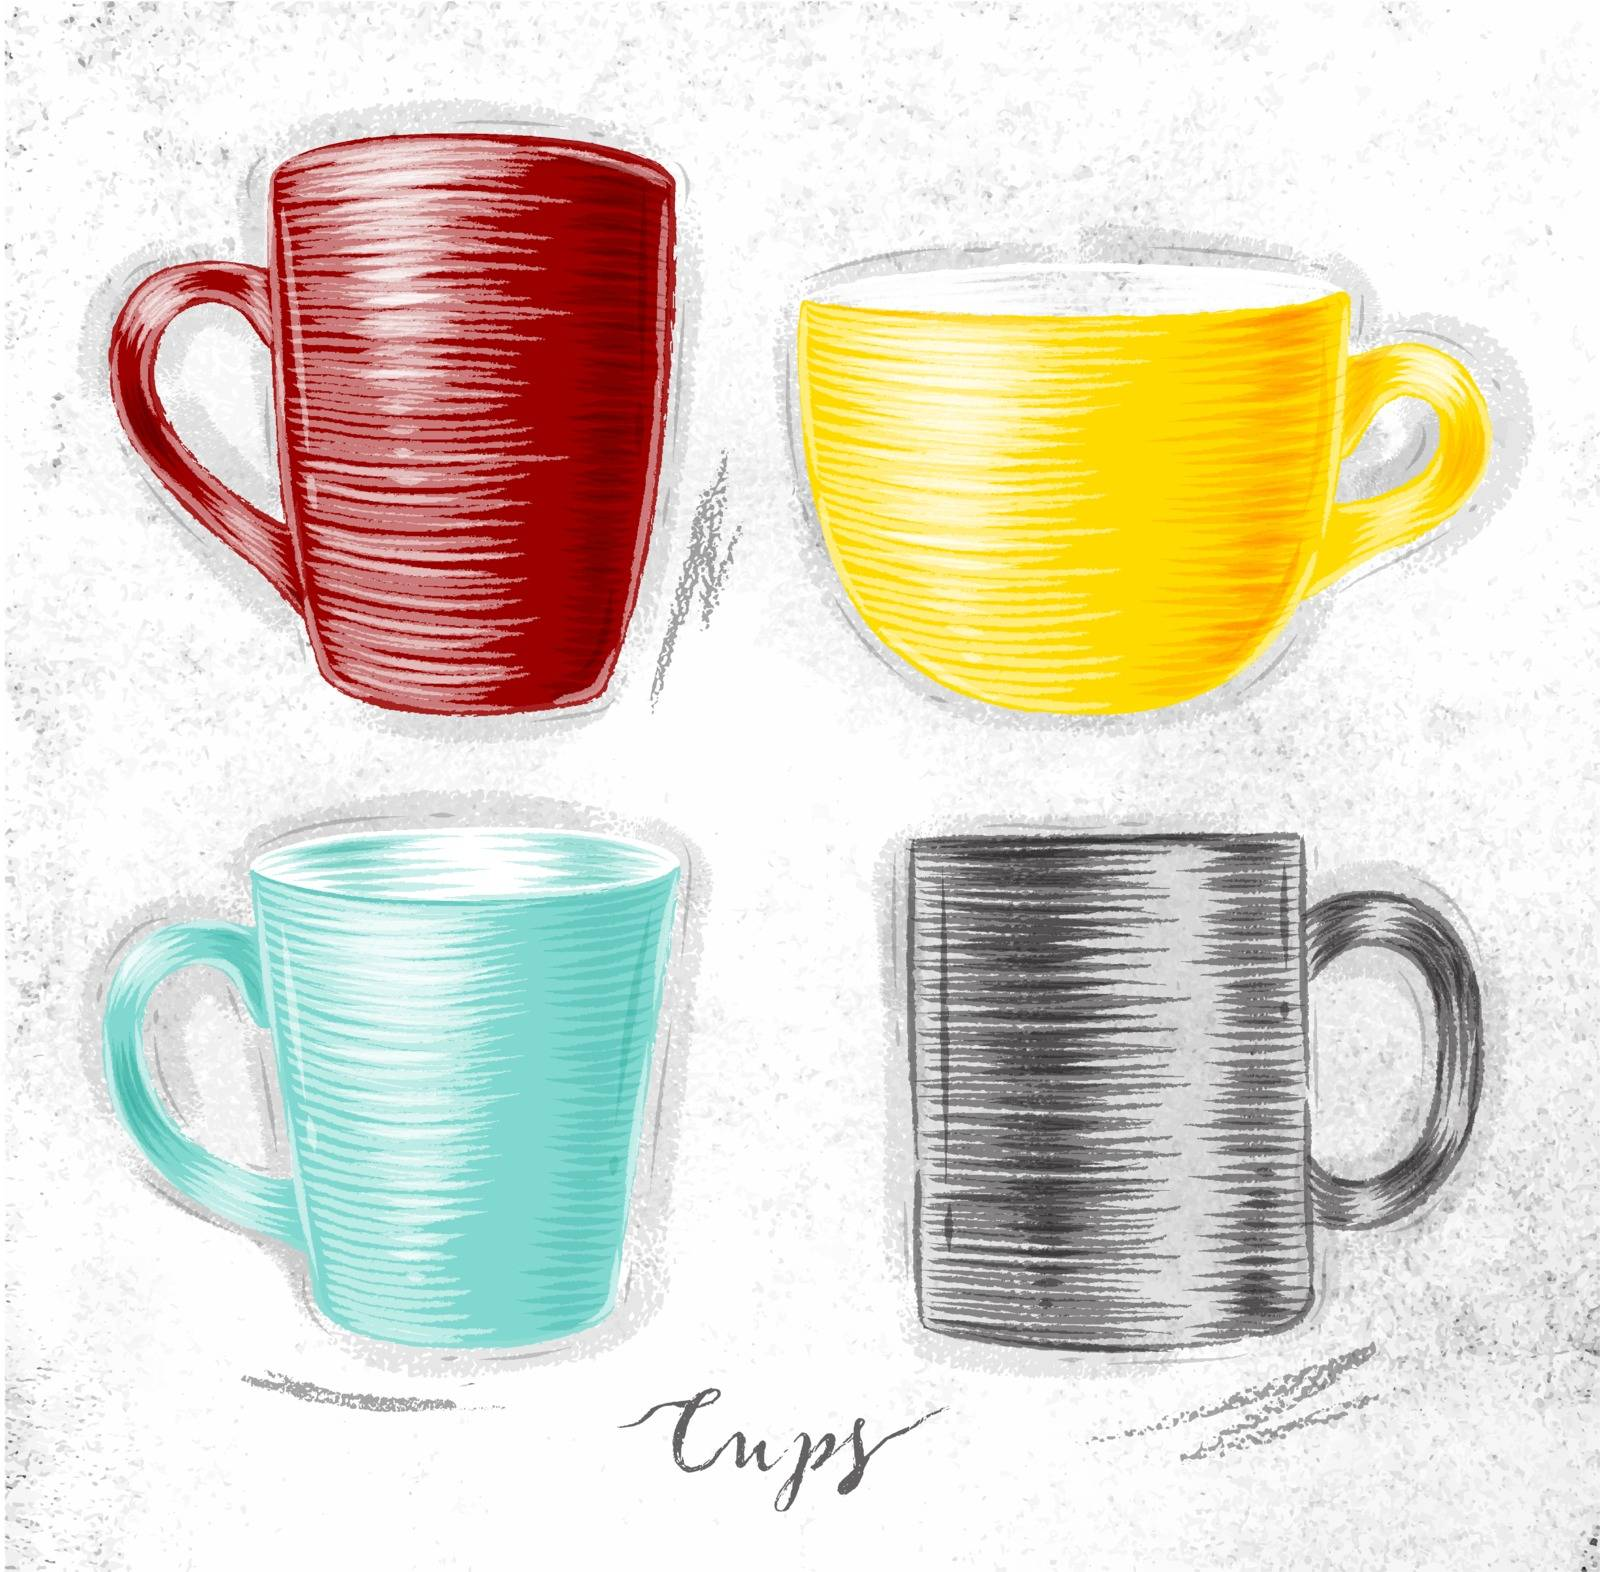 Set of cups different forms drawing in red, yellow, turquoise, gray color on dirty paper background